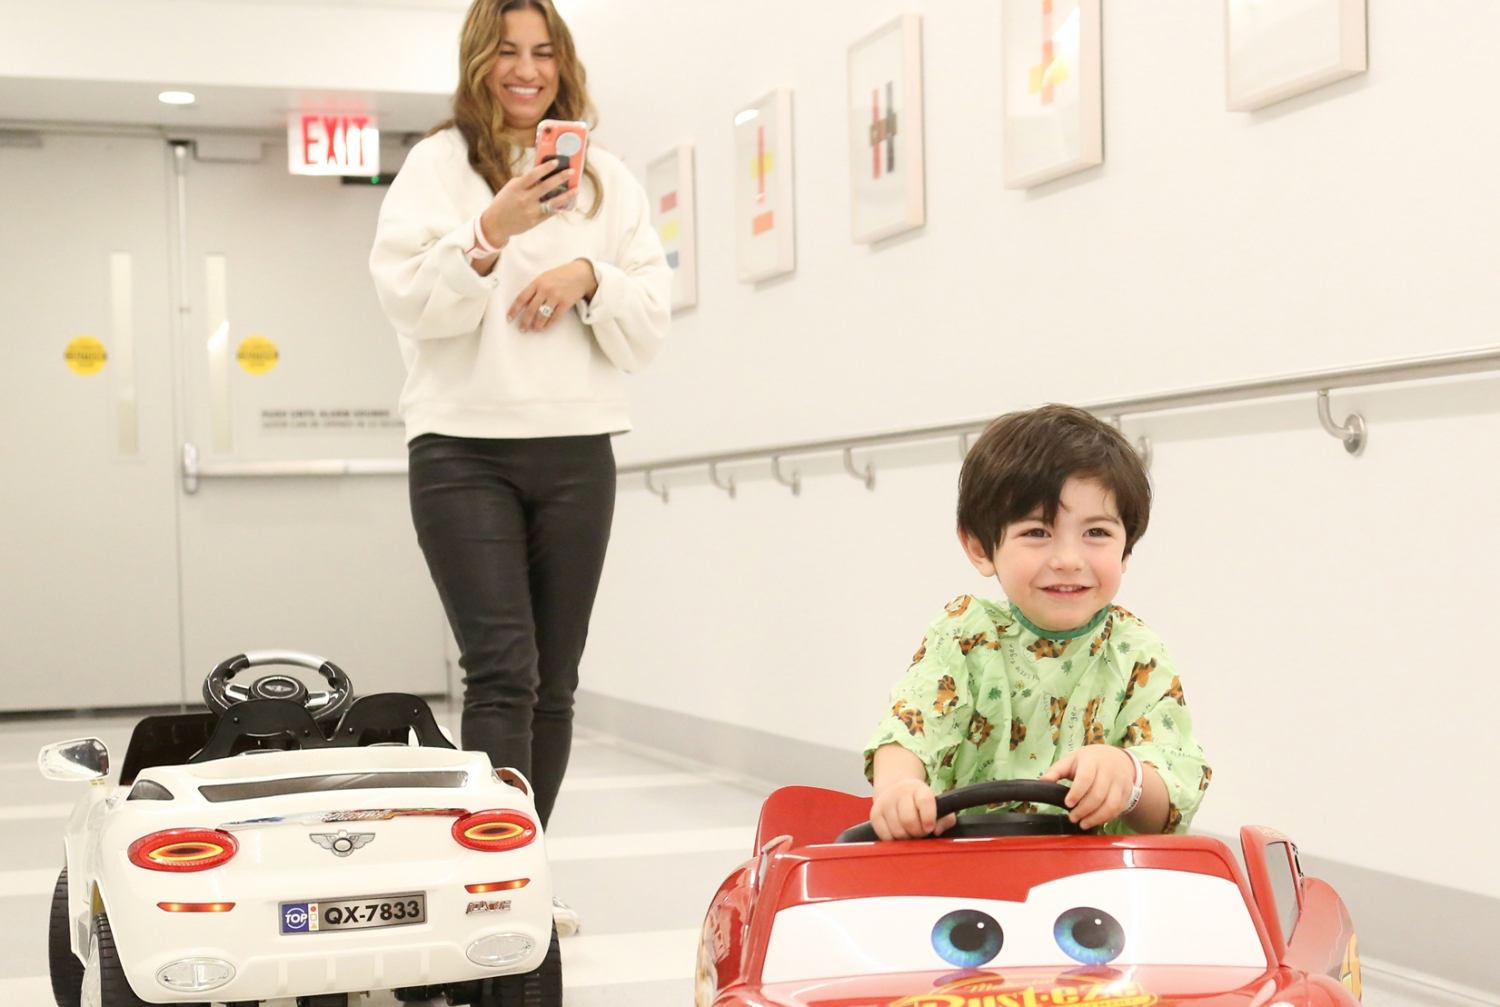 Elena Silverman films her son Jamie riding in one of the miniature cars as he awaits surgery. Credit: Julia Xanthos Liddy